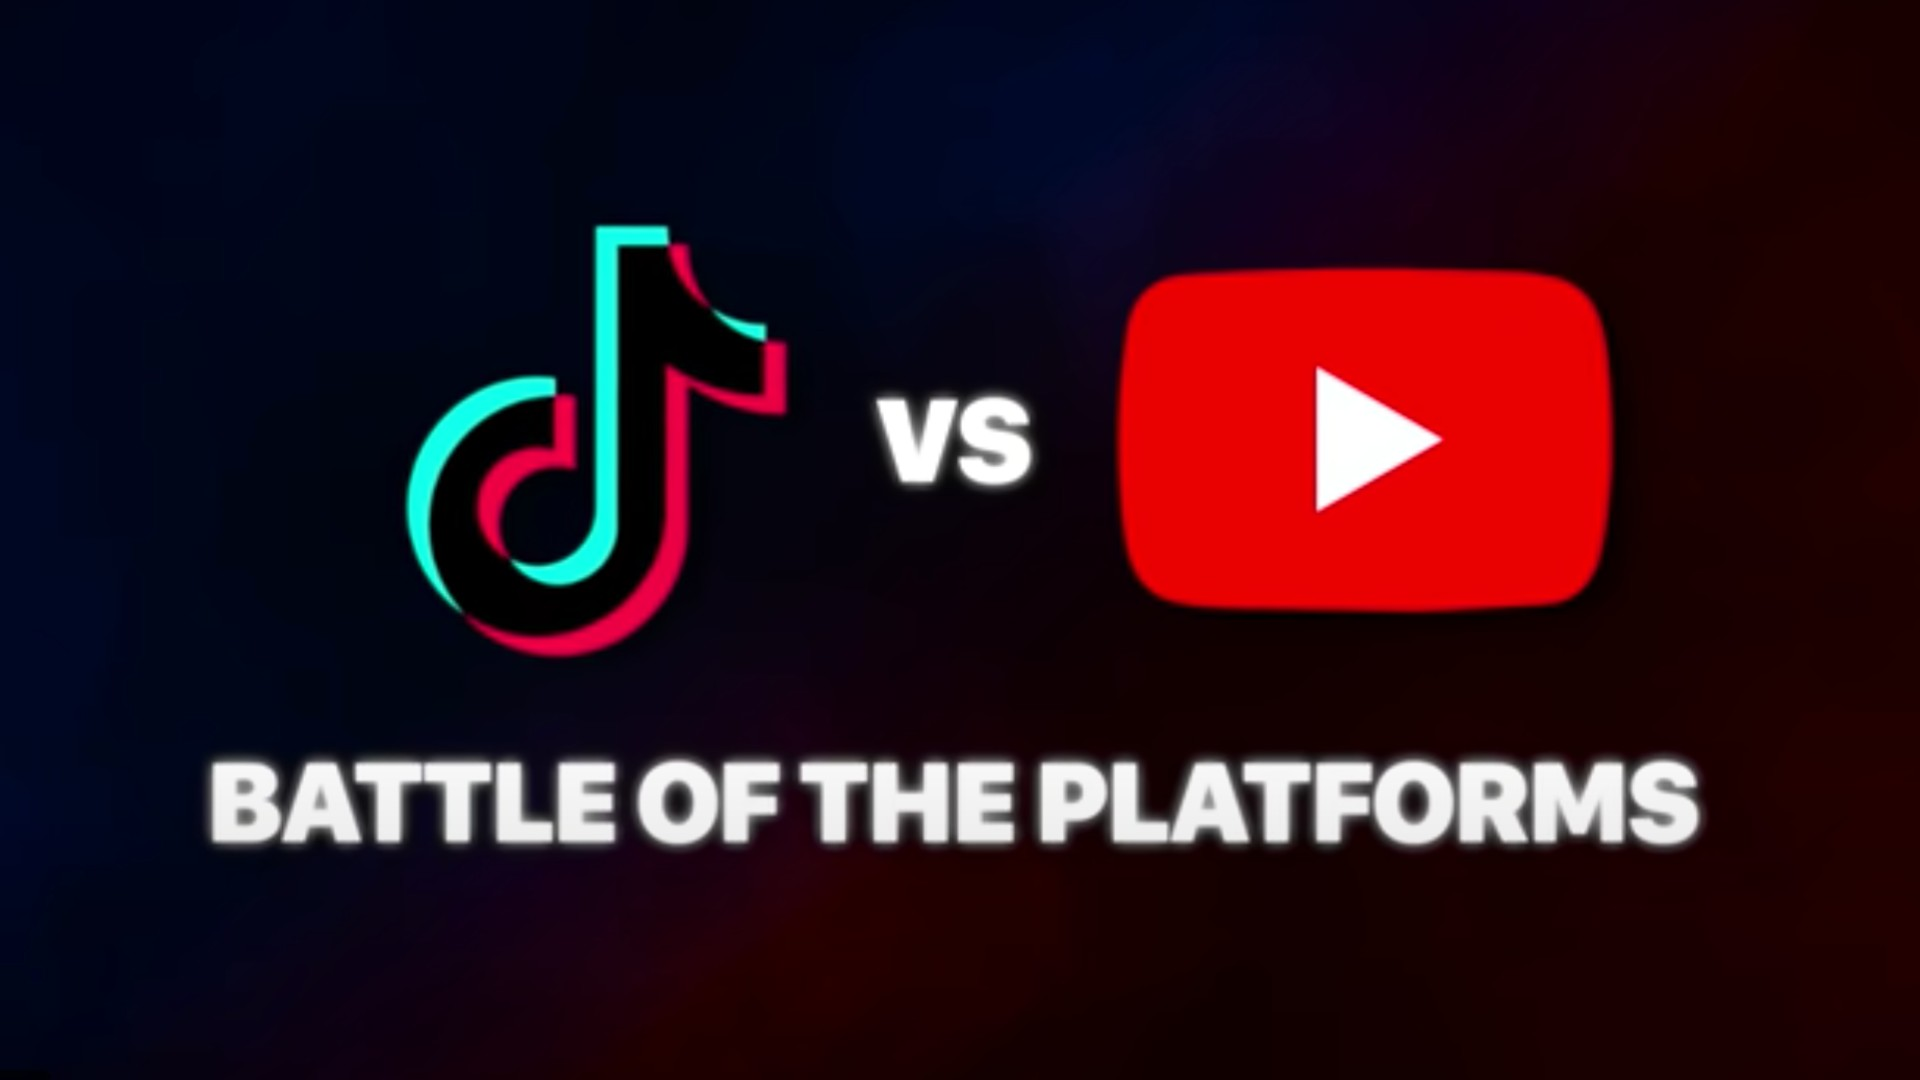 YouTube vs. TikTok boxing date, time, card and more to know about Battle of the Platforms